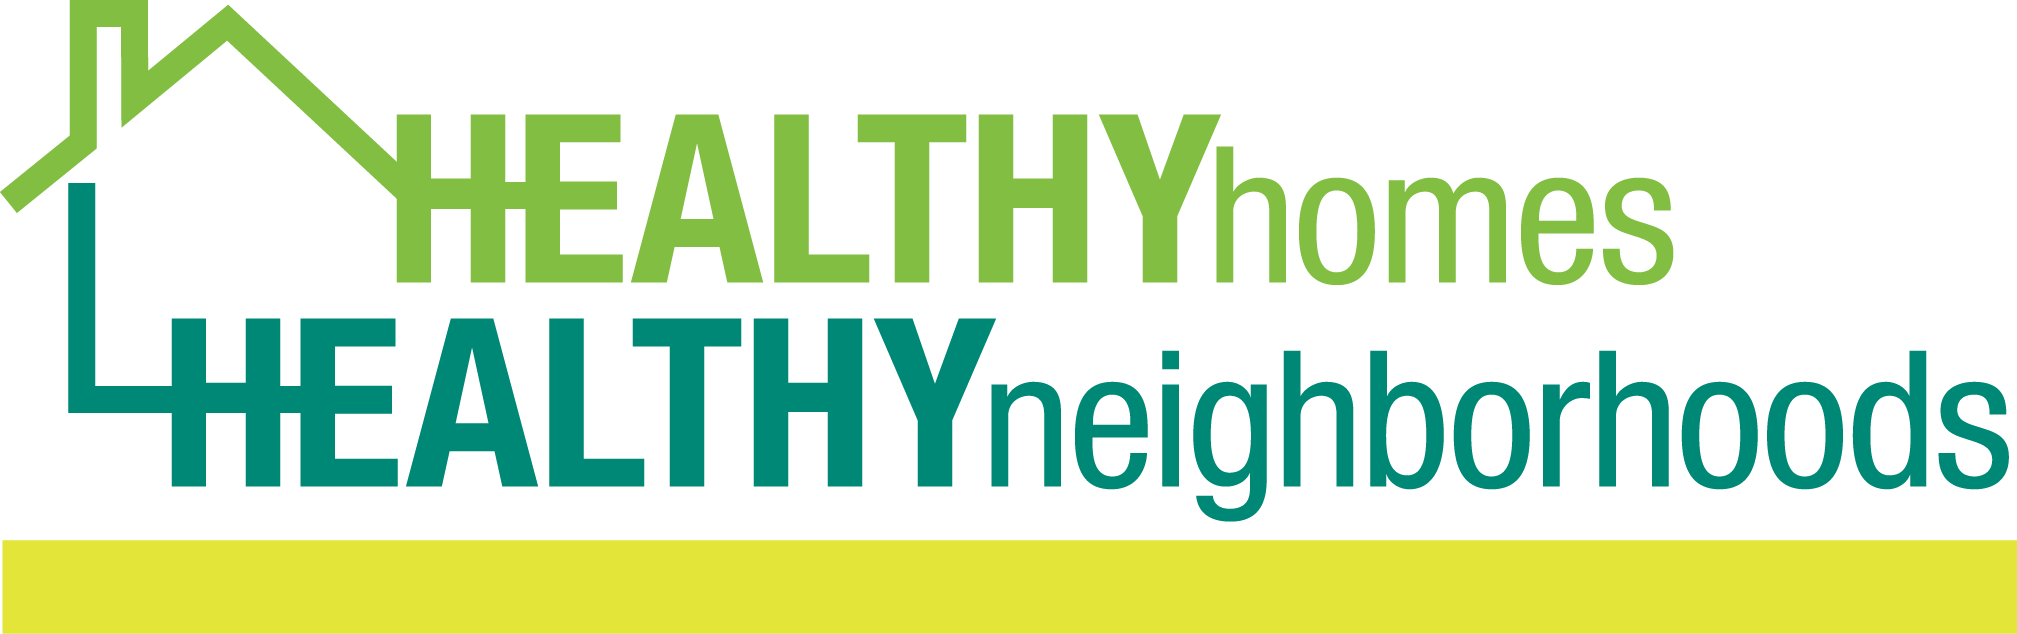 Healthy Homes, Healthy Neighborhoods Logo